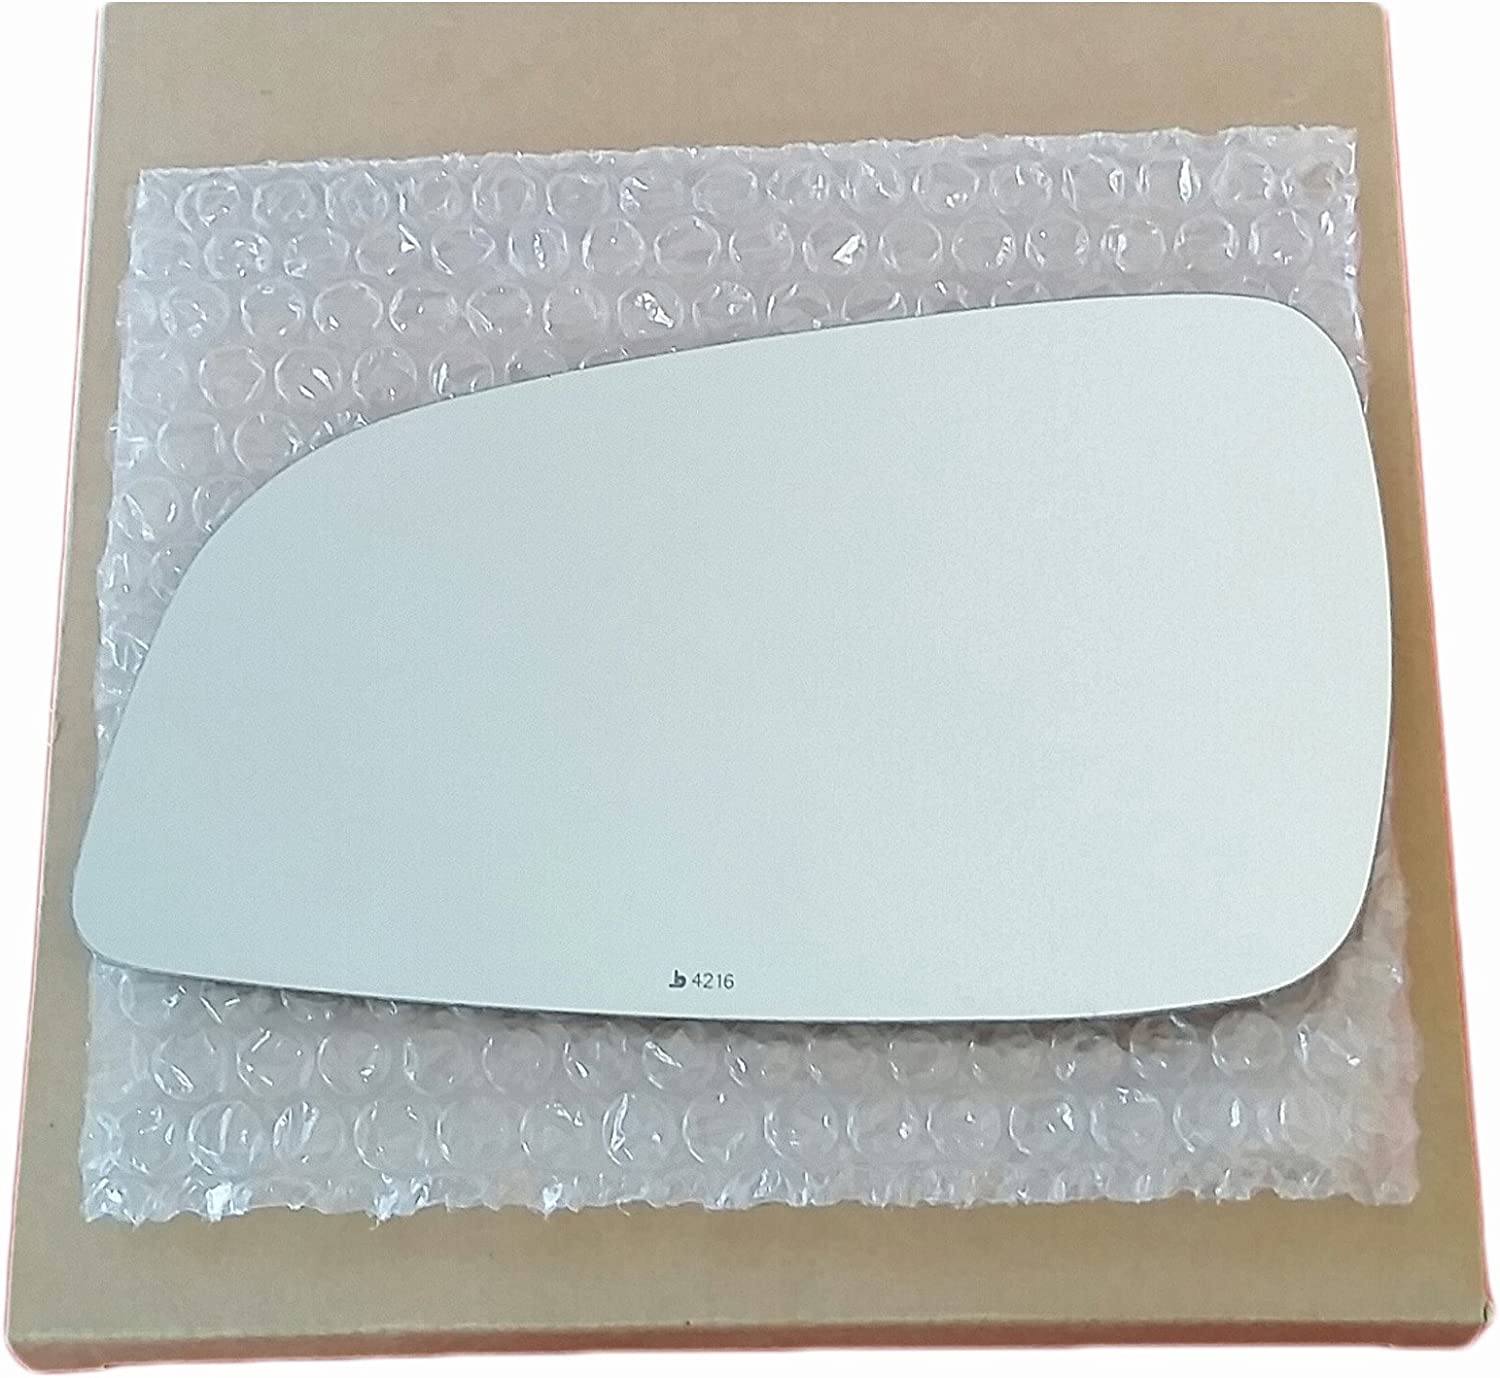 CHEVROLET MALIBU SATURN AURA FITS RIGHT PASSENGER SIDE BURCO MIRROR GLASS 5296